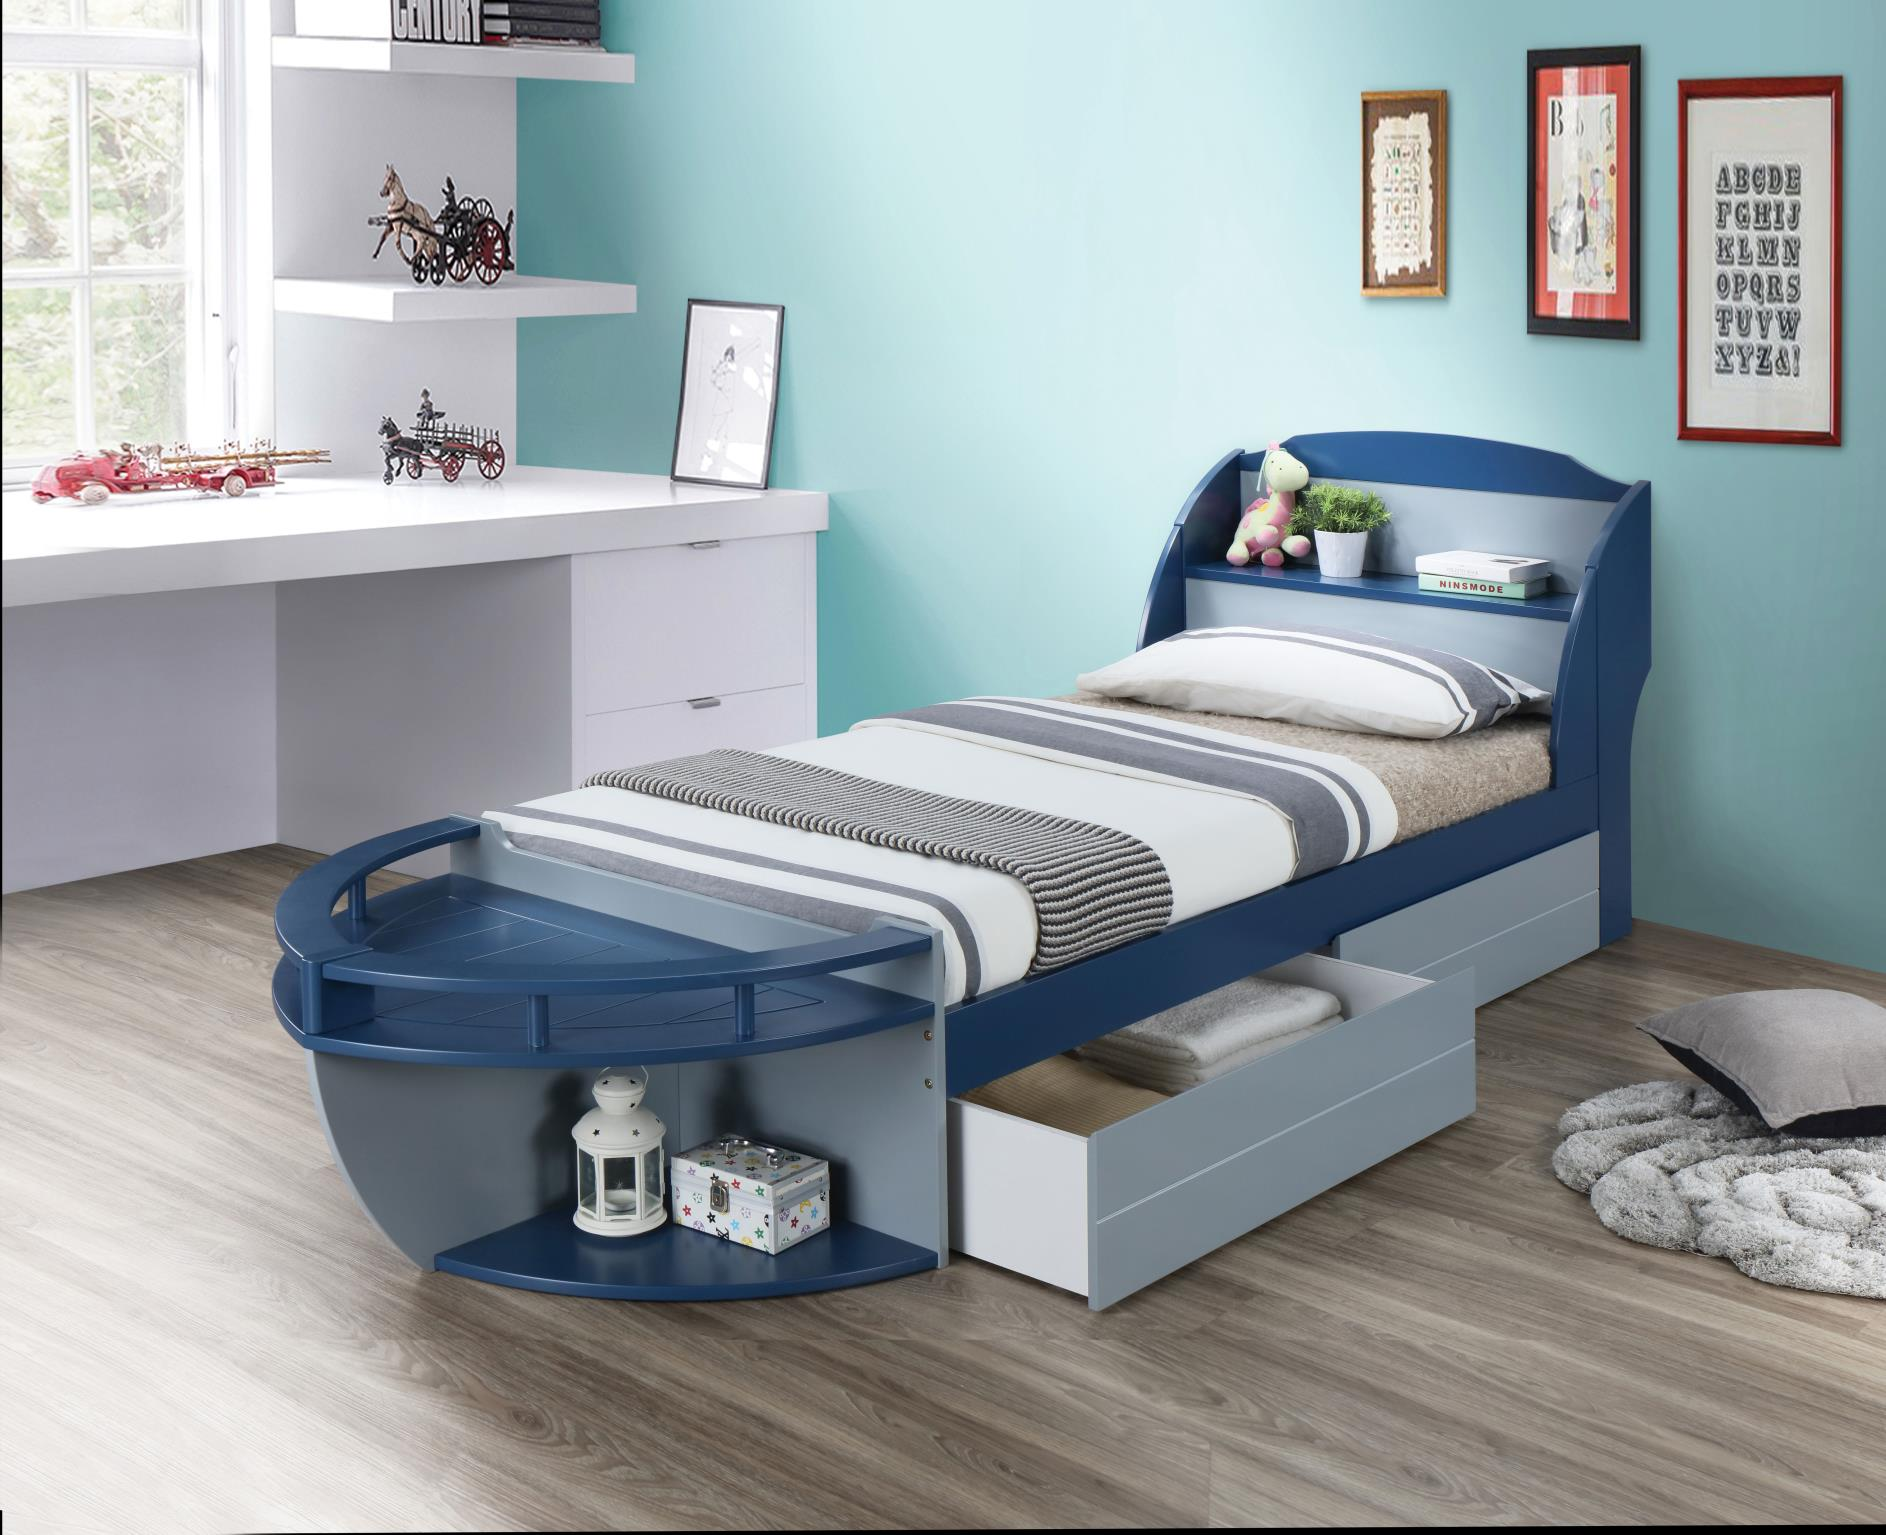 Boat Shaped Bed w/ Drawers